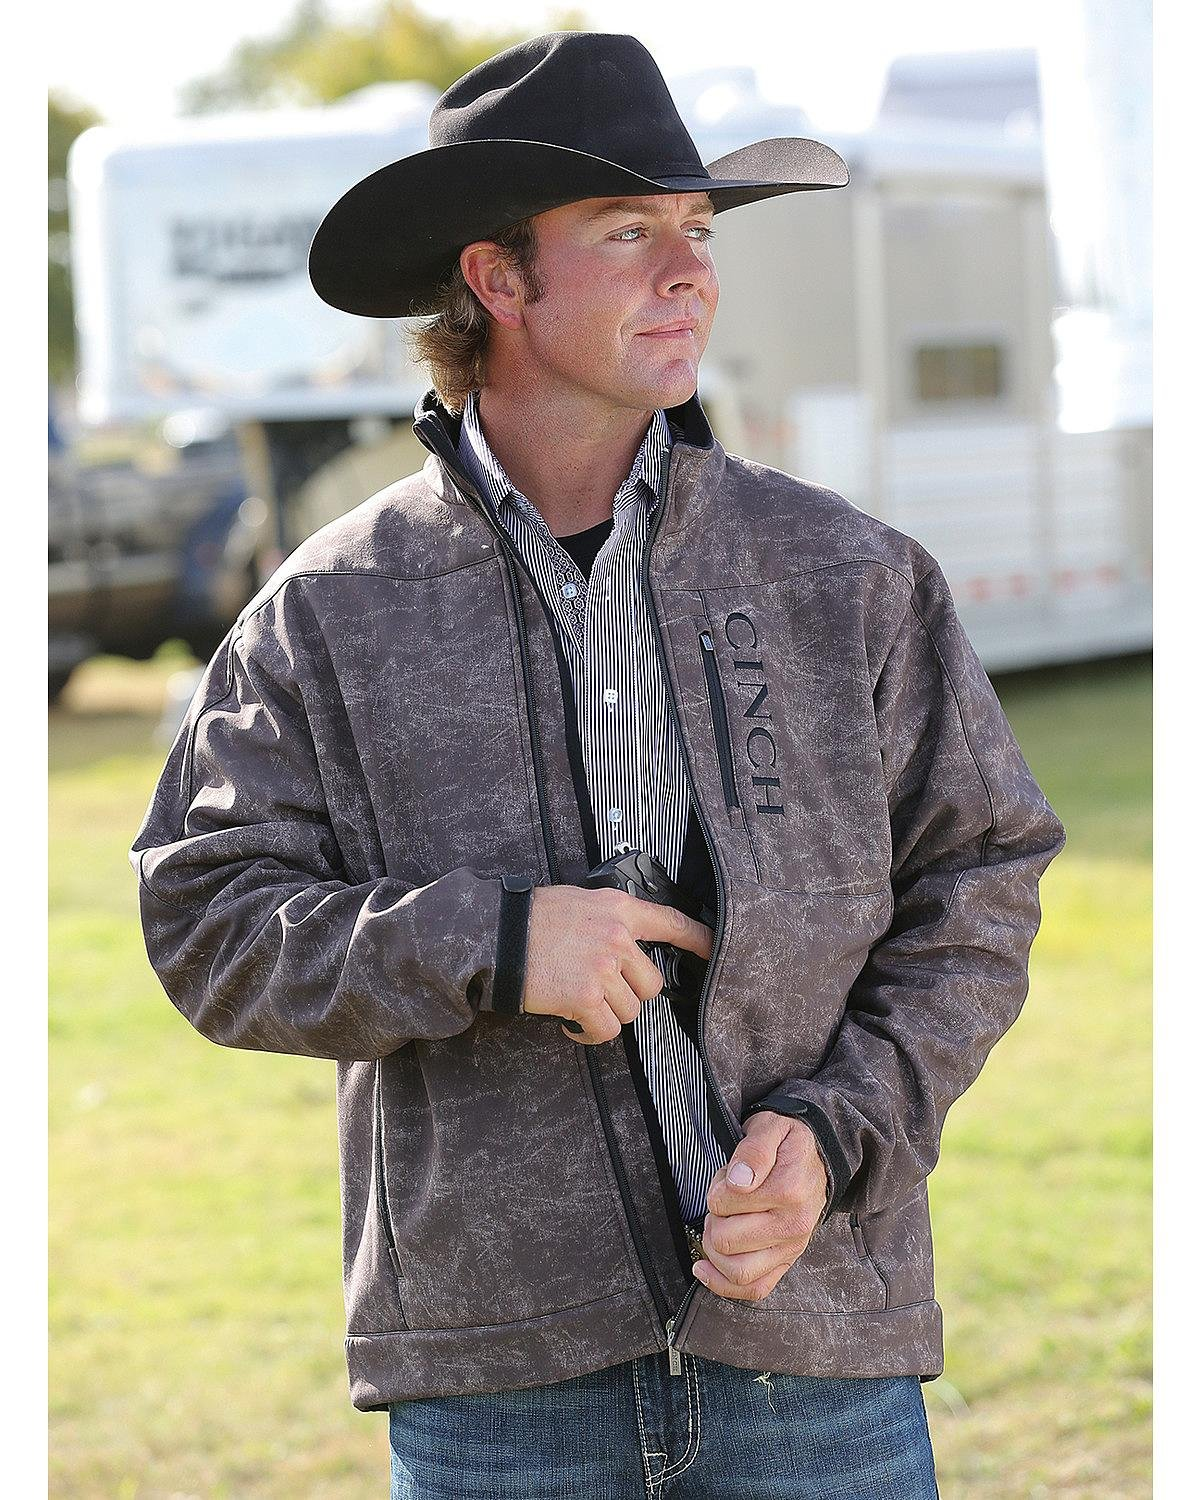 Cinch Men's Bonded Softshell Jacket With Concealed Carry Pockets, Marled Brown, Medium by Cinch (Image #1)